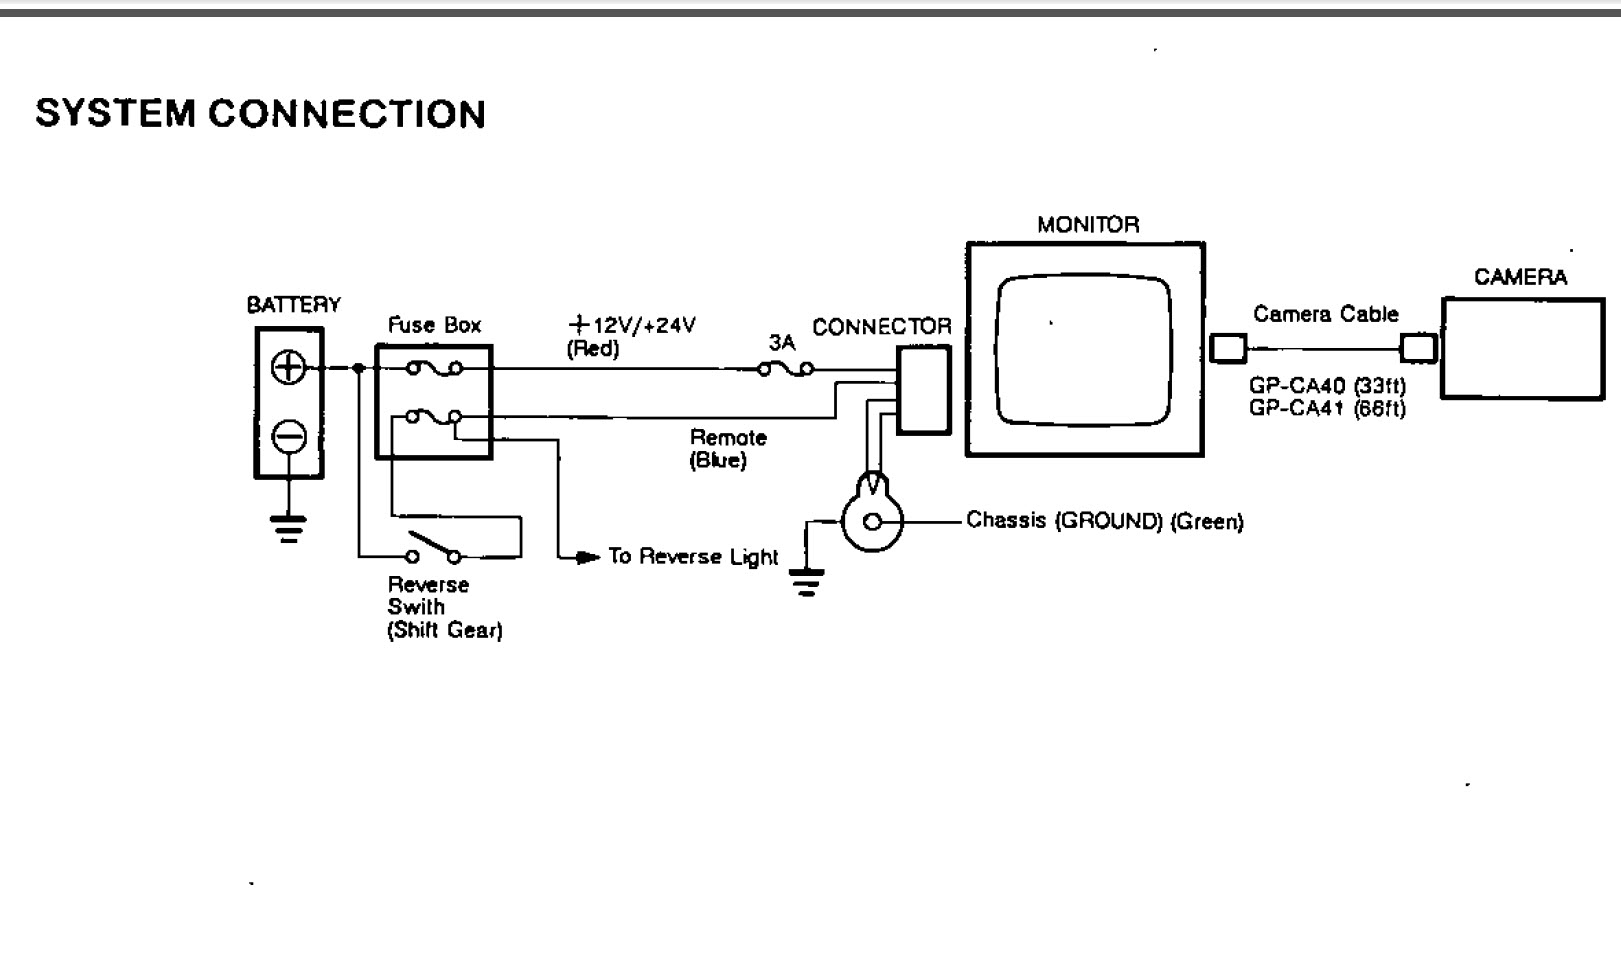 sir im in need of the schematic for hooking up an rv camera